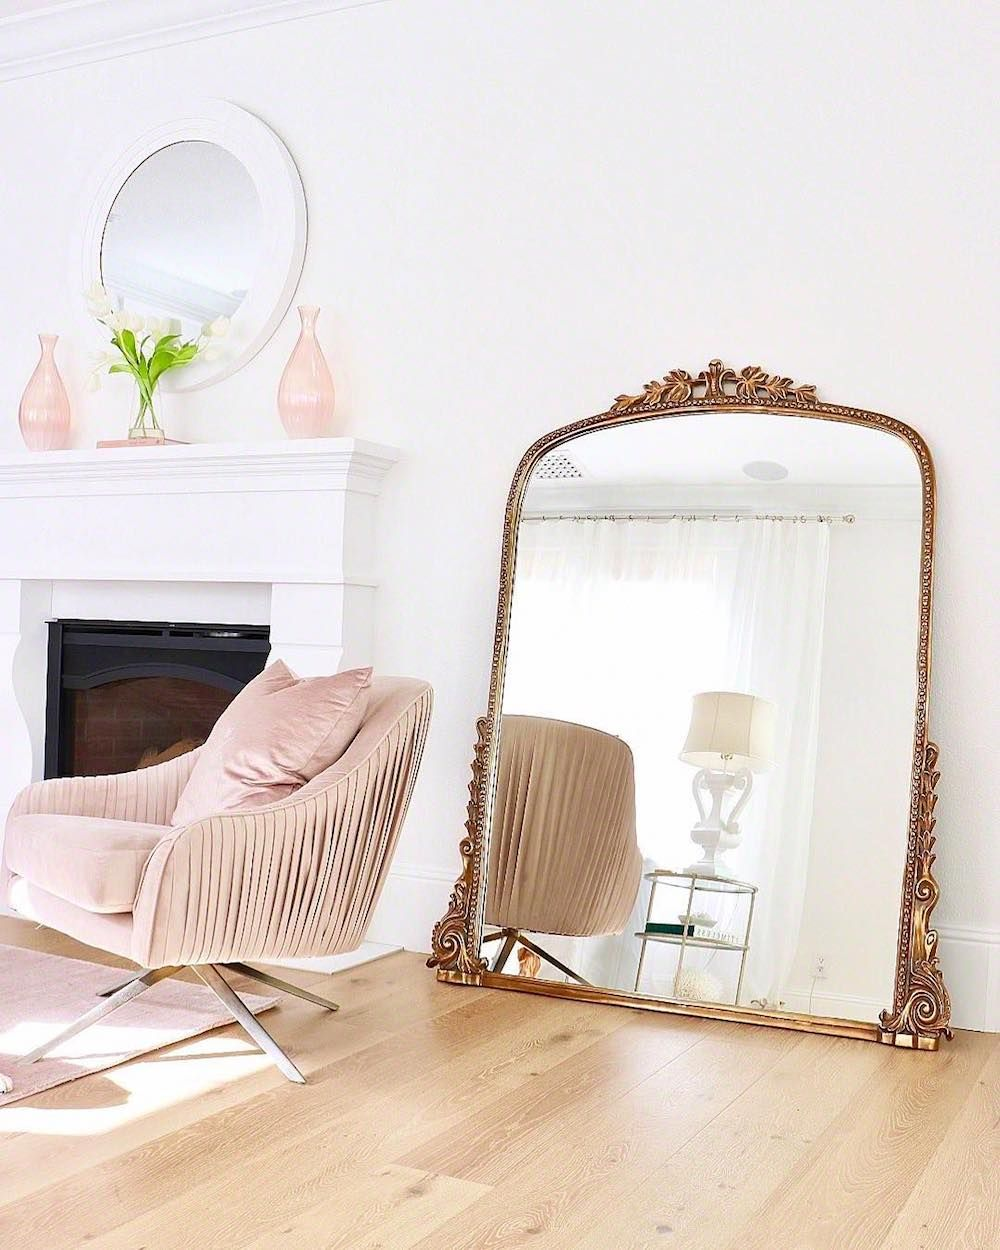 Gold 7 Foot Gleaming Primrose Mirror With Blush Velvet Chair In Living Room Blushchairs Vint White Walls Living Room Feminine Living Room Living Room Mirrors